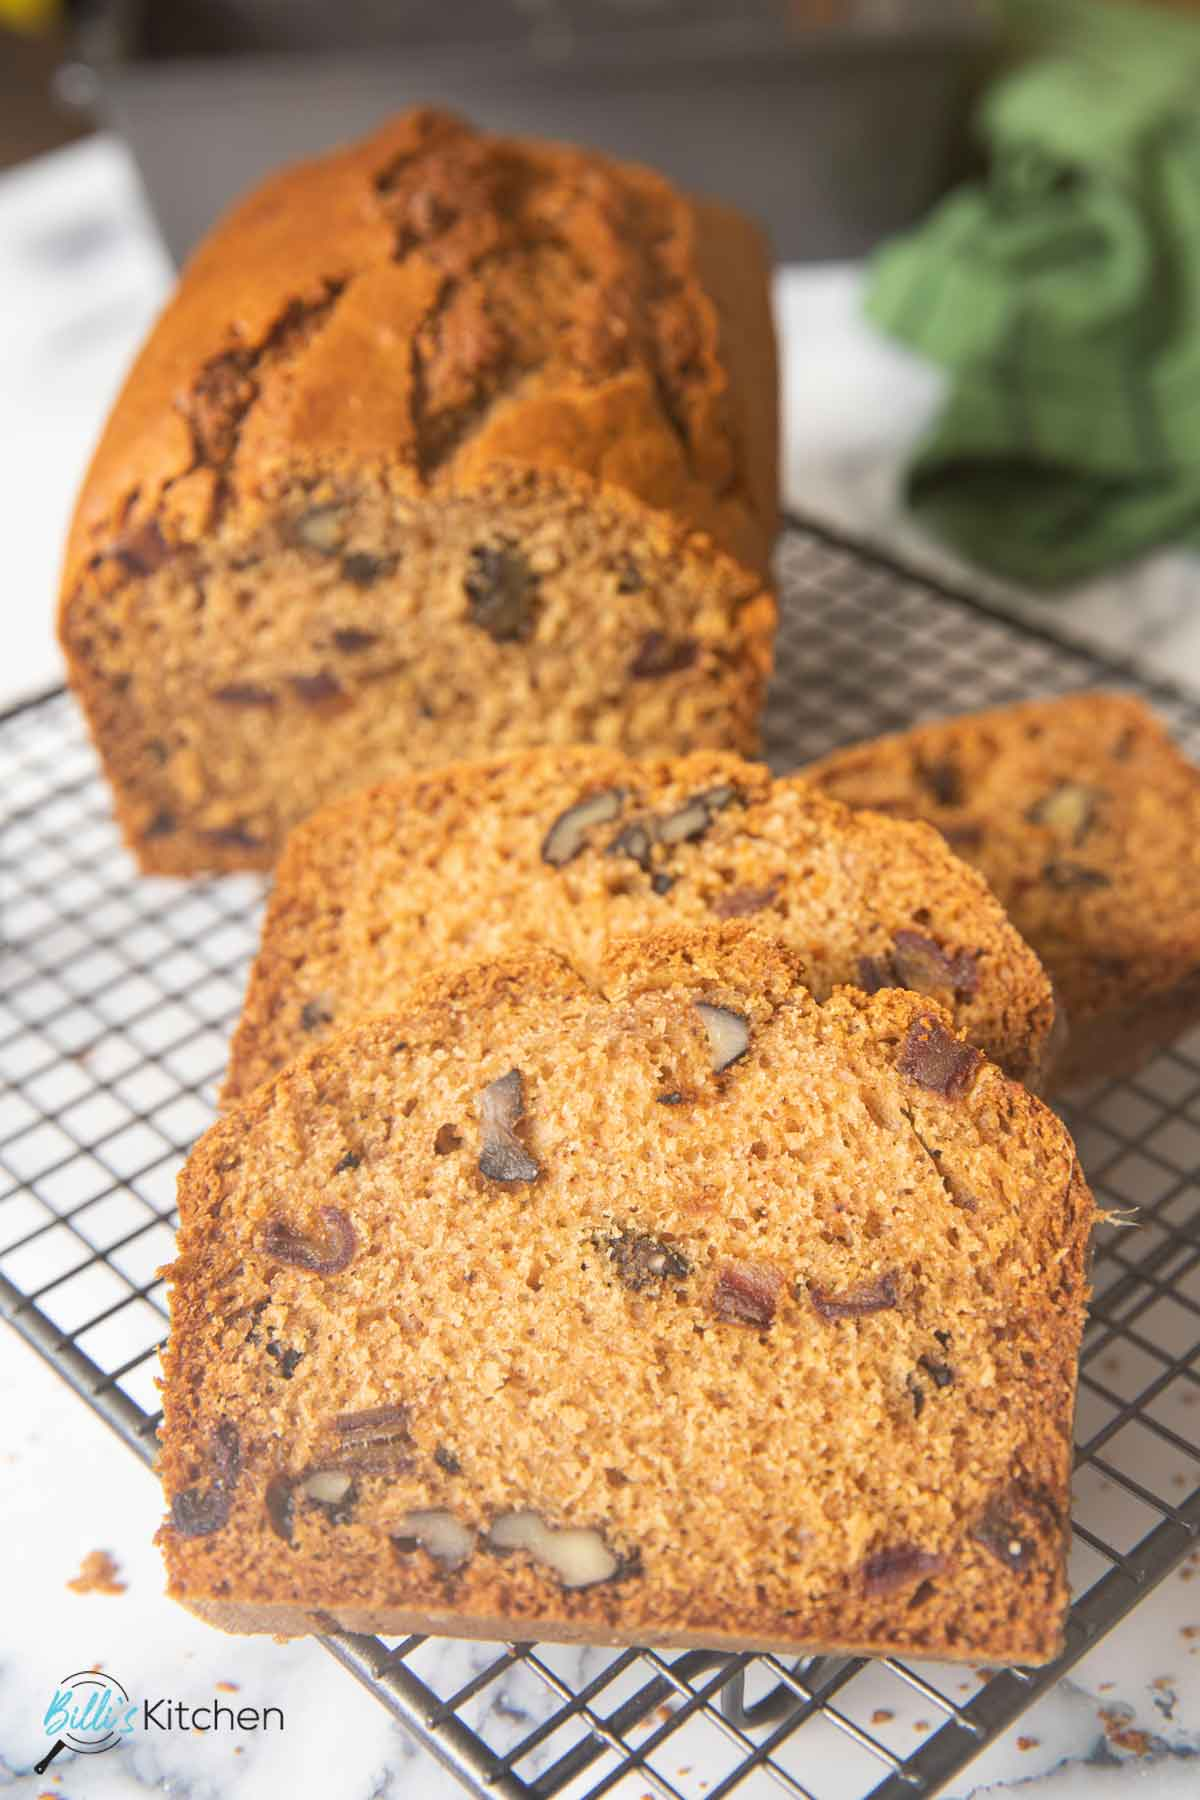 A closer shot of a slice of date nut bread highlighting the texture of the bread.